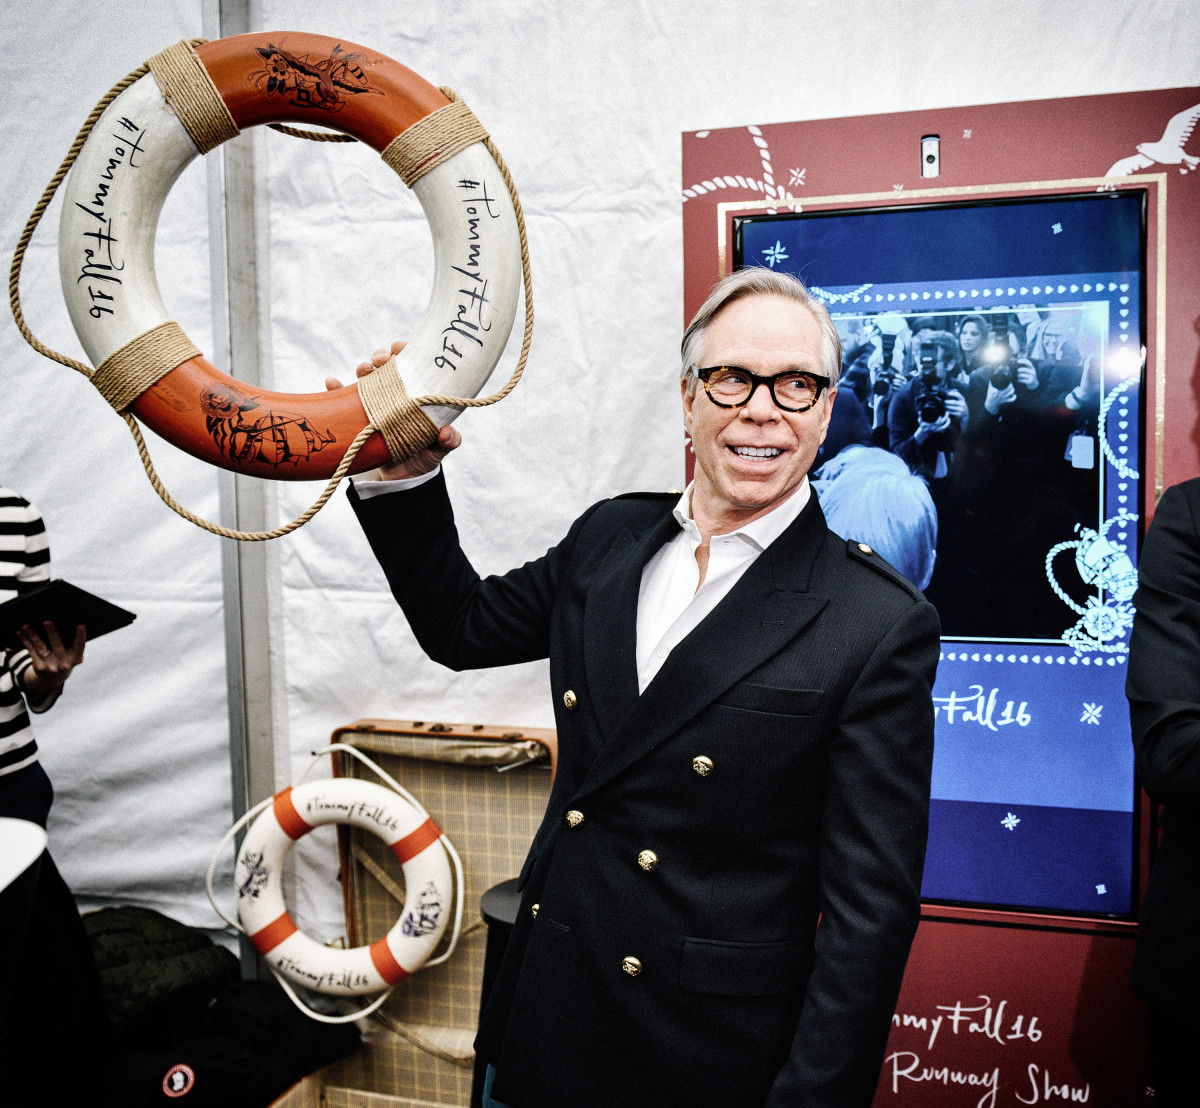 Tommy hilfiger show to include 40 foot ferris wheel public carnival and gigi hadid fashionista - Tommy hilfiger show ...